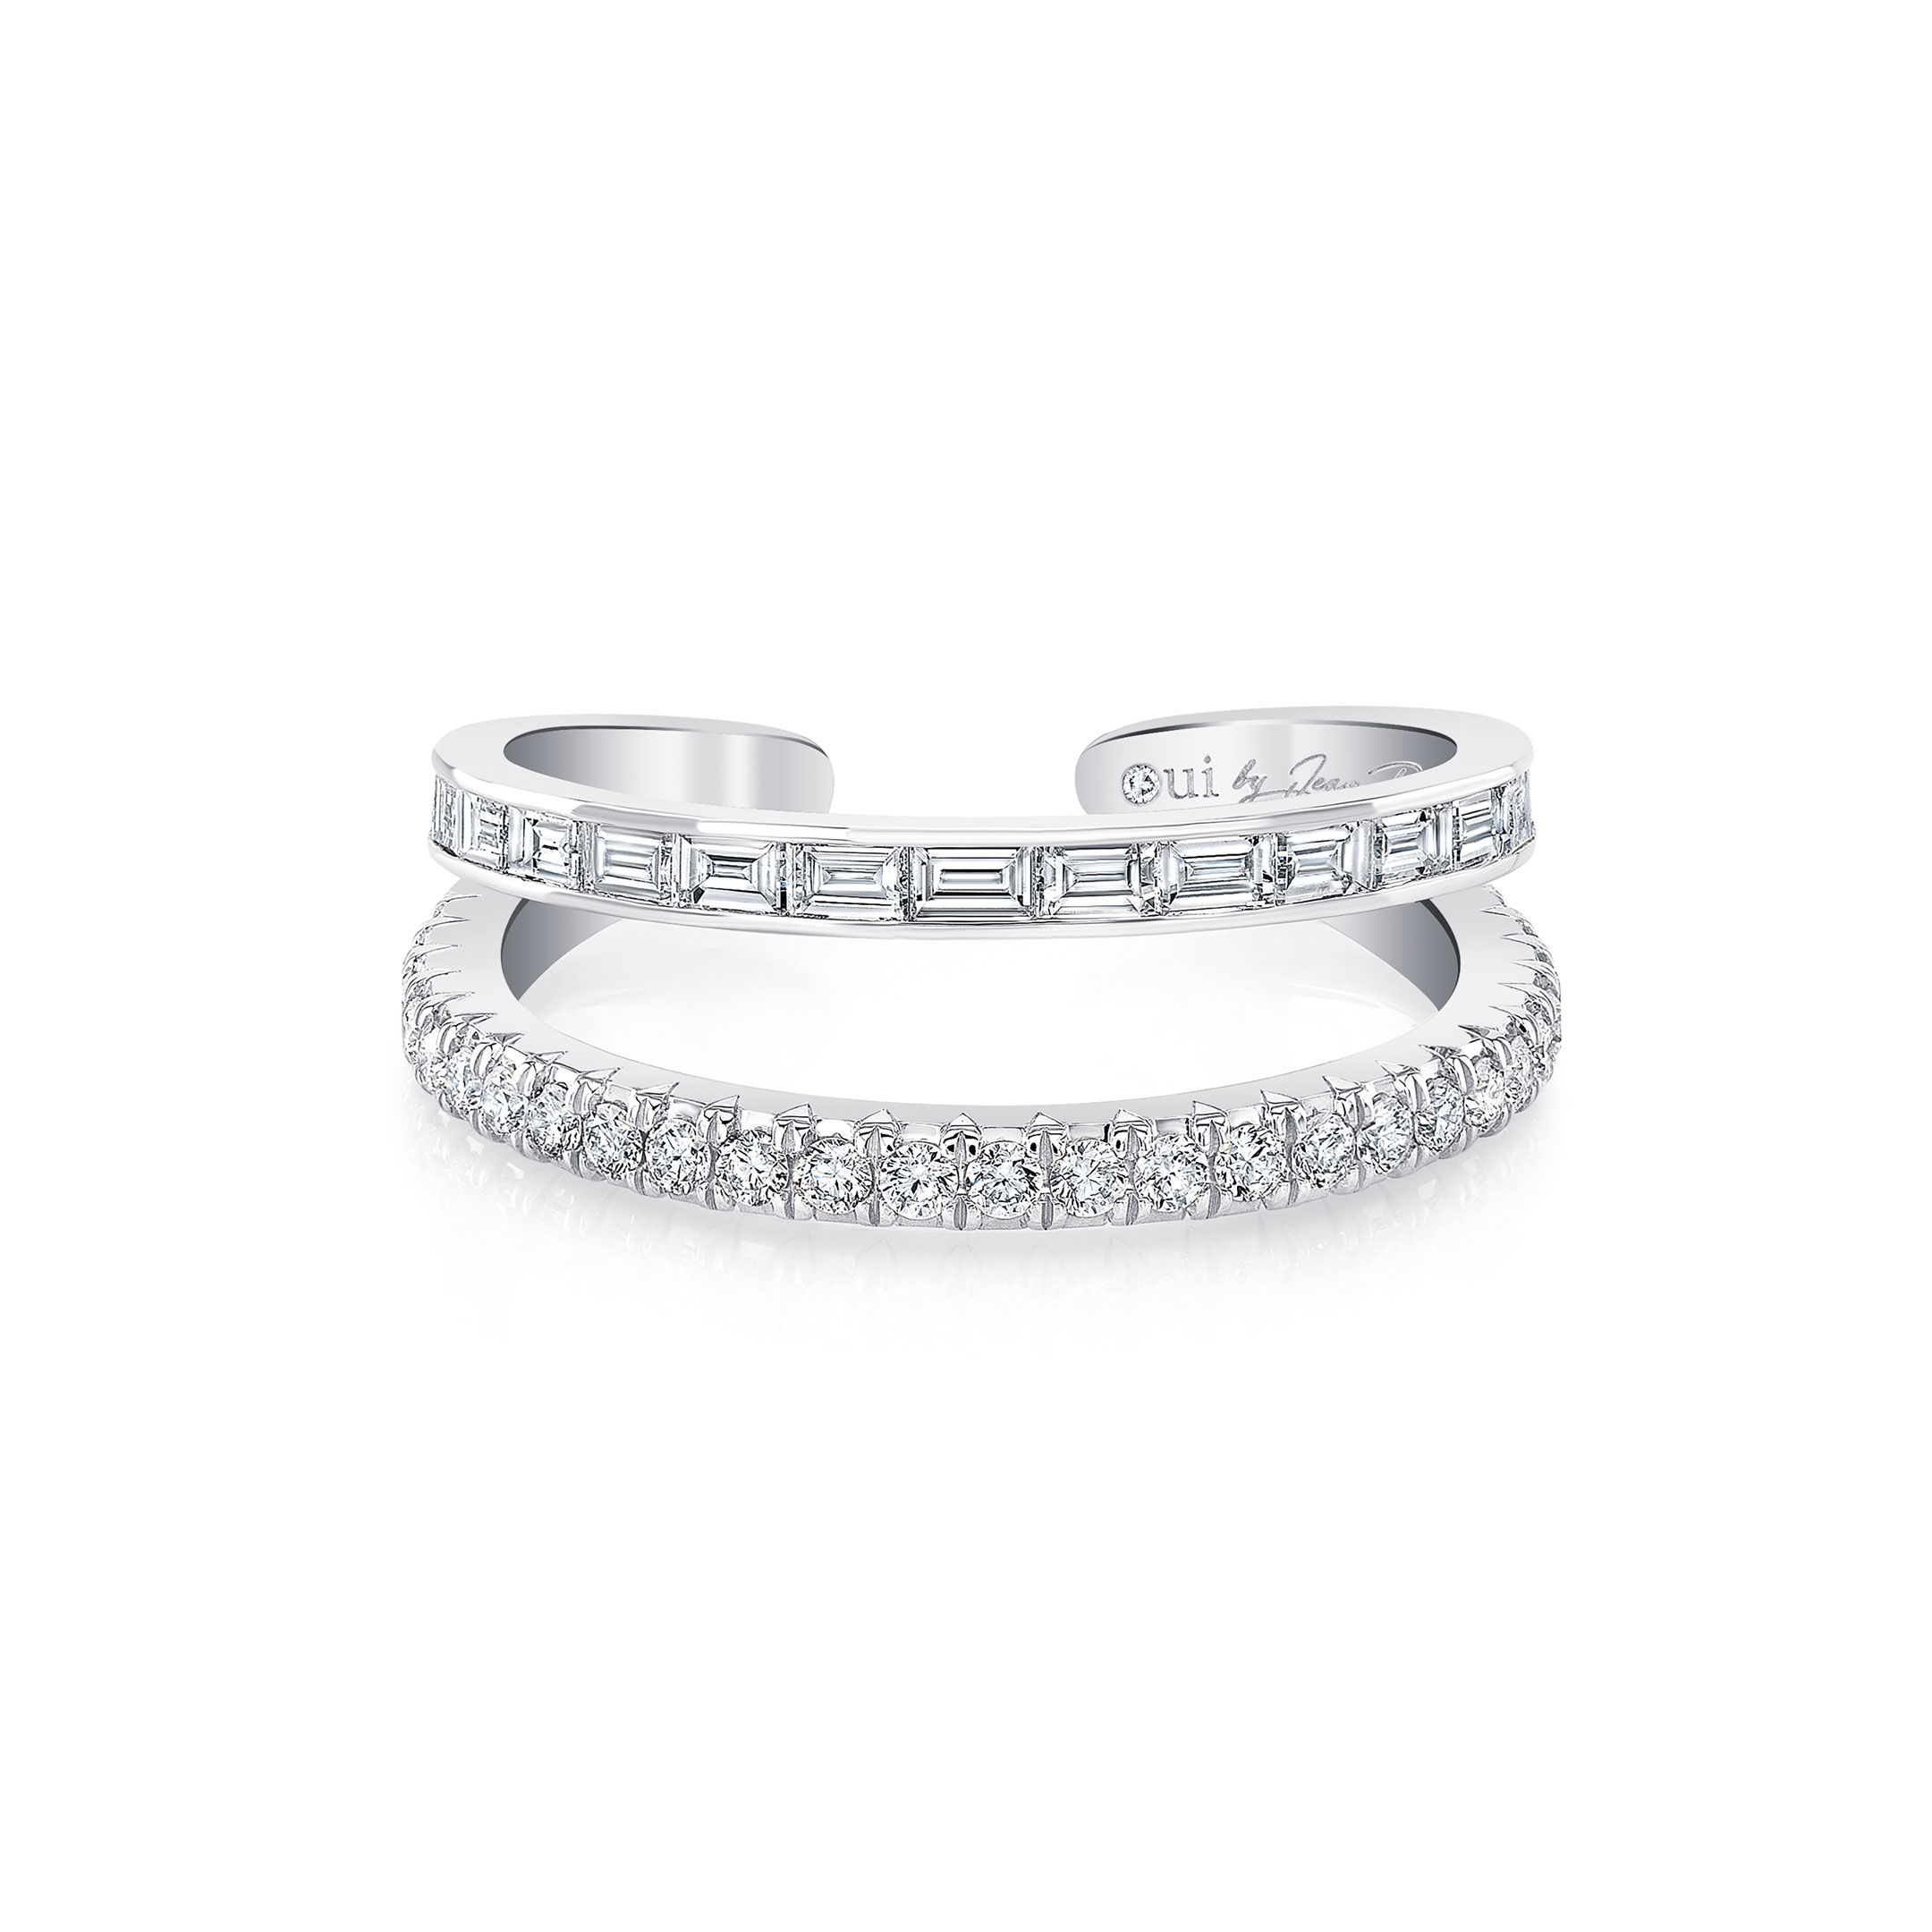 Baguette and Diamond Pavé Double Band Ring in 18k White Gold Front View by Oui by Jean Dousset